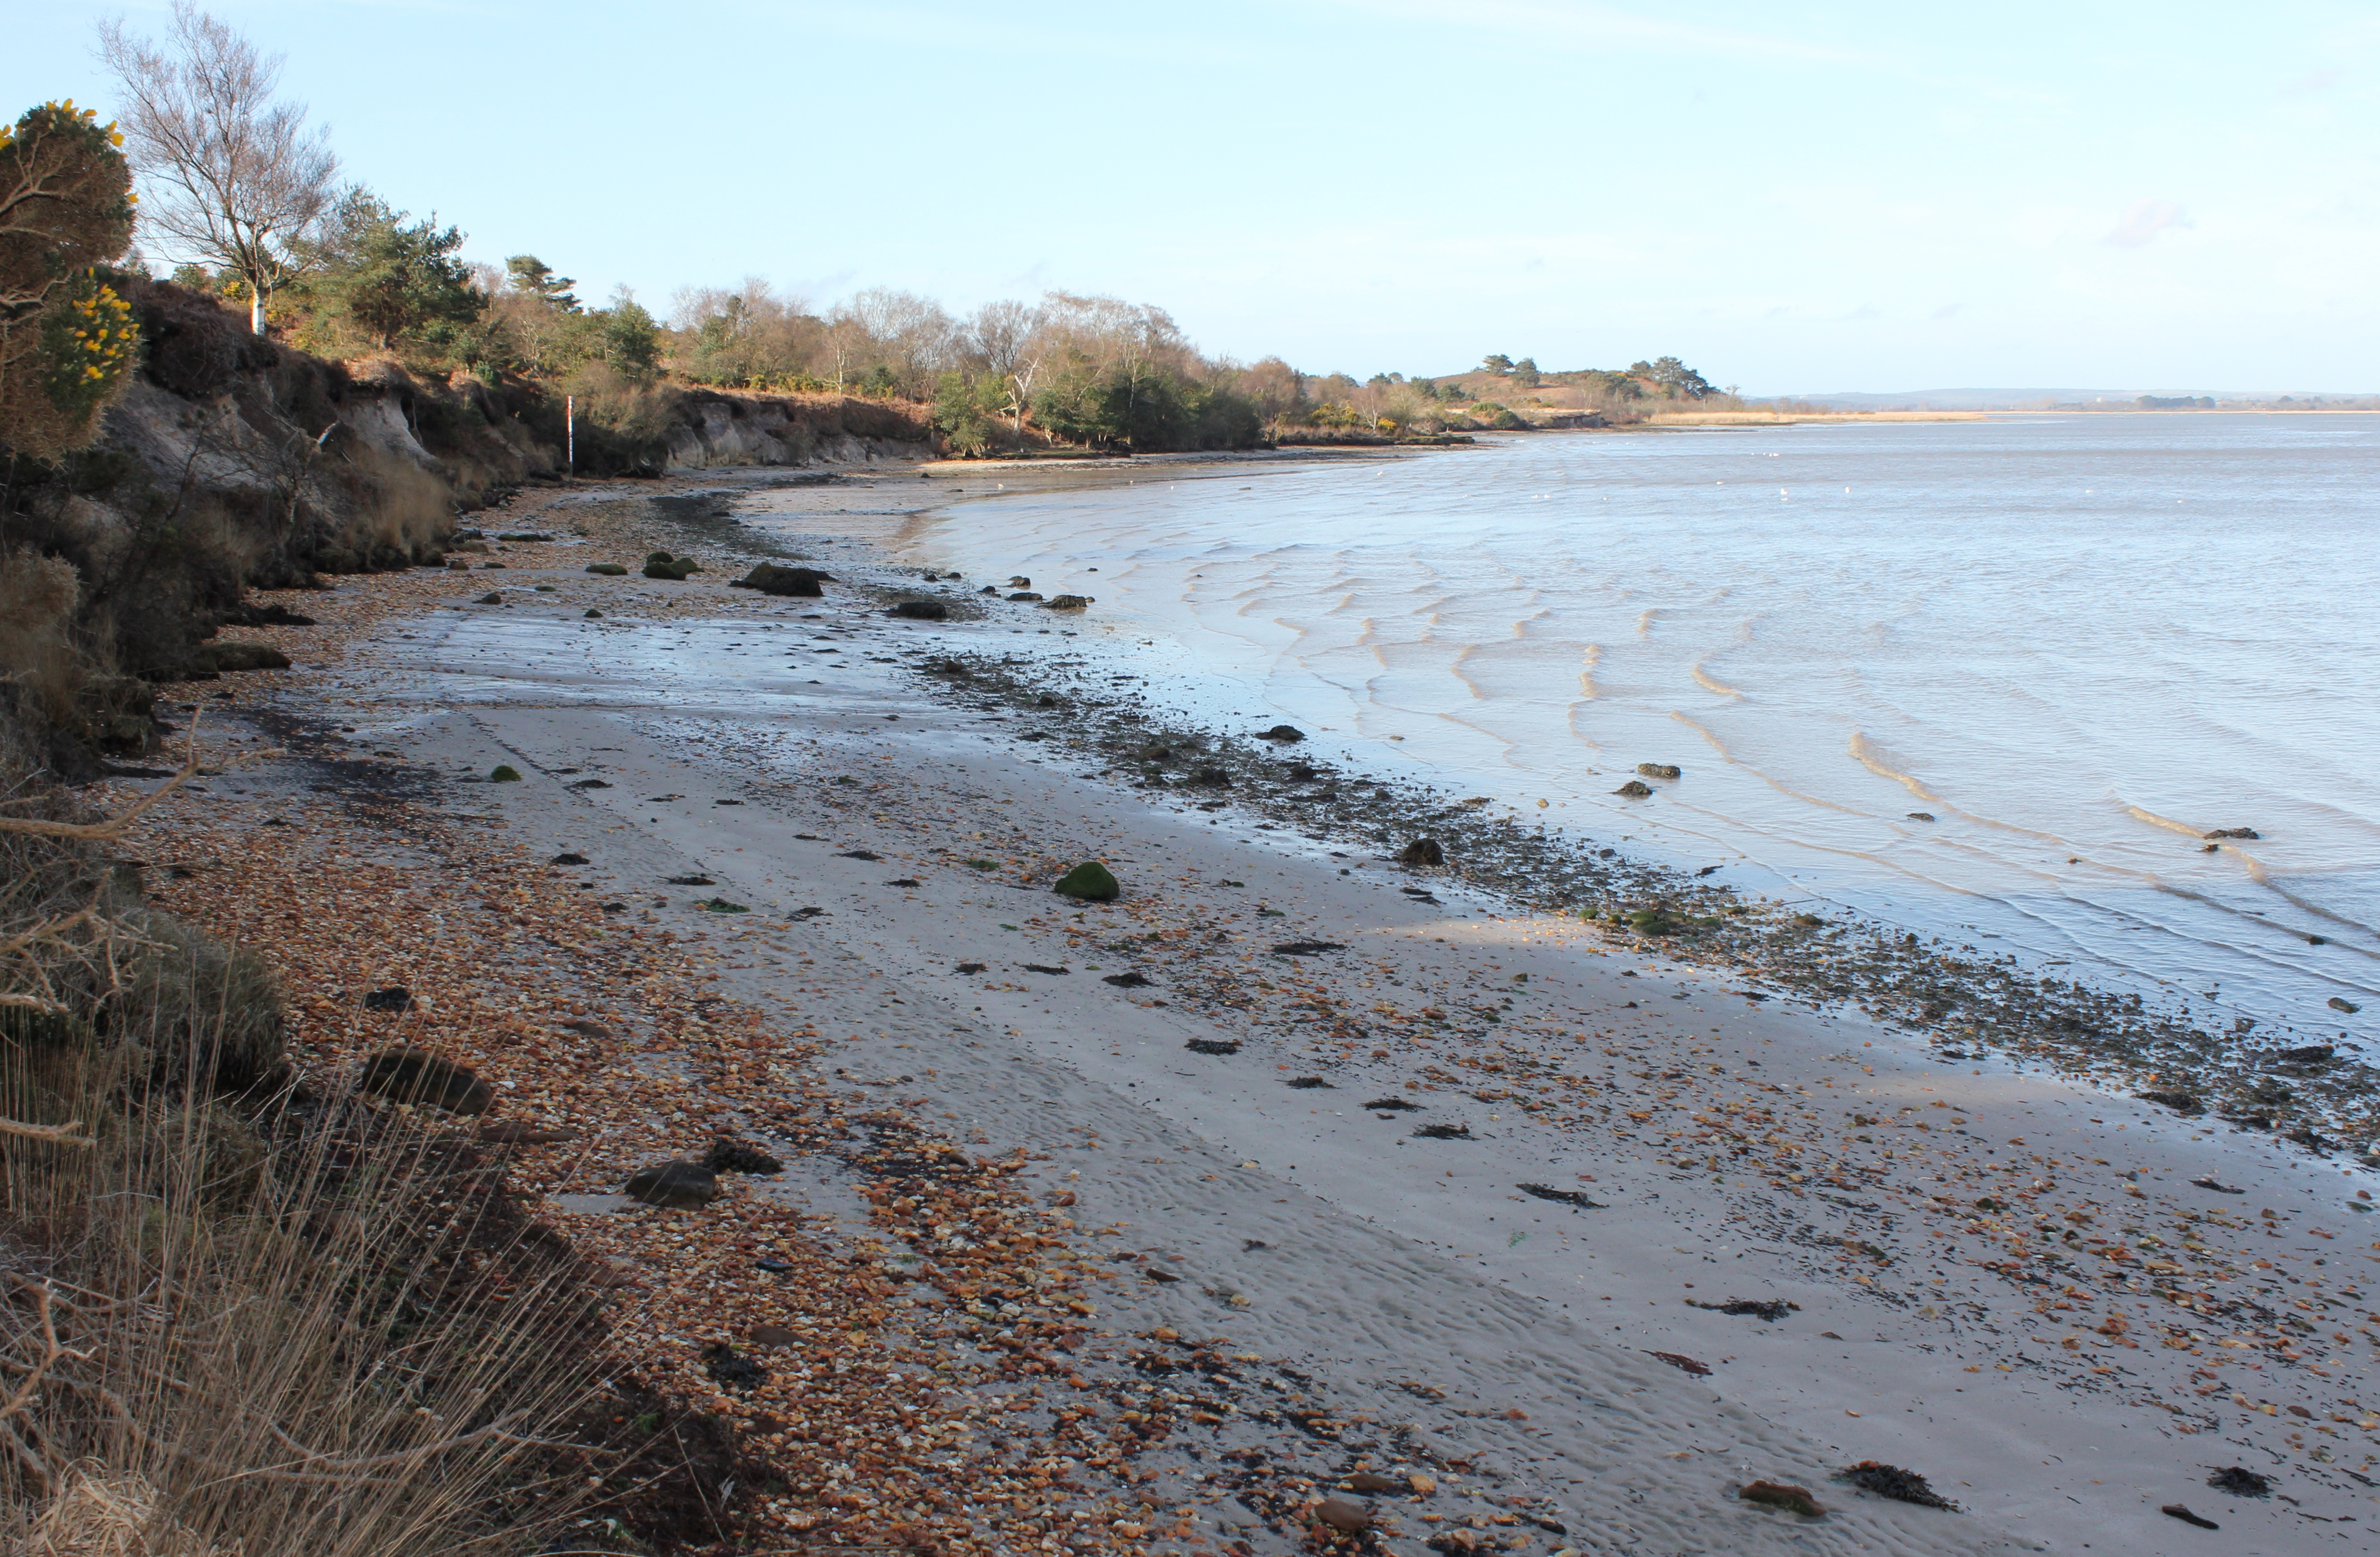 The view to the south-west from just south of Russel Quay (early April 2016). As it was before 09:00 when this picture was taken the sunshine on top of the Arne peninsula had yet to reach over the low cliffs, but, as can be seen from the incoming tide, it was a lot calmer than over at Shipstal Point which had all but disappeared under the waves driven by the easterly wind (see earlier images).